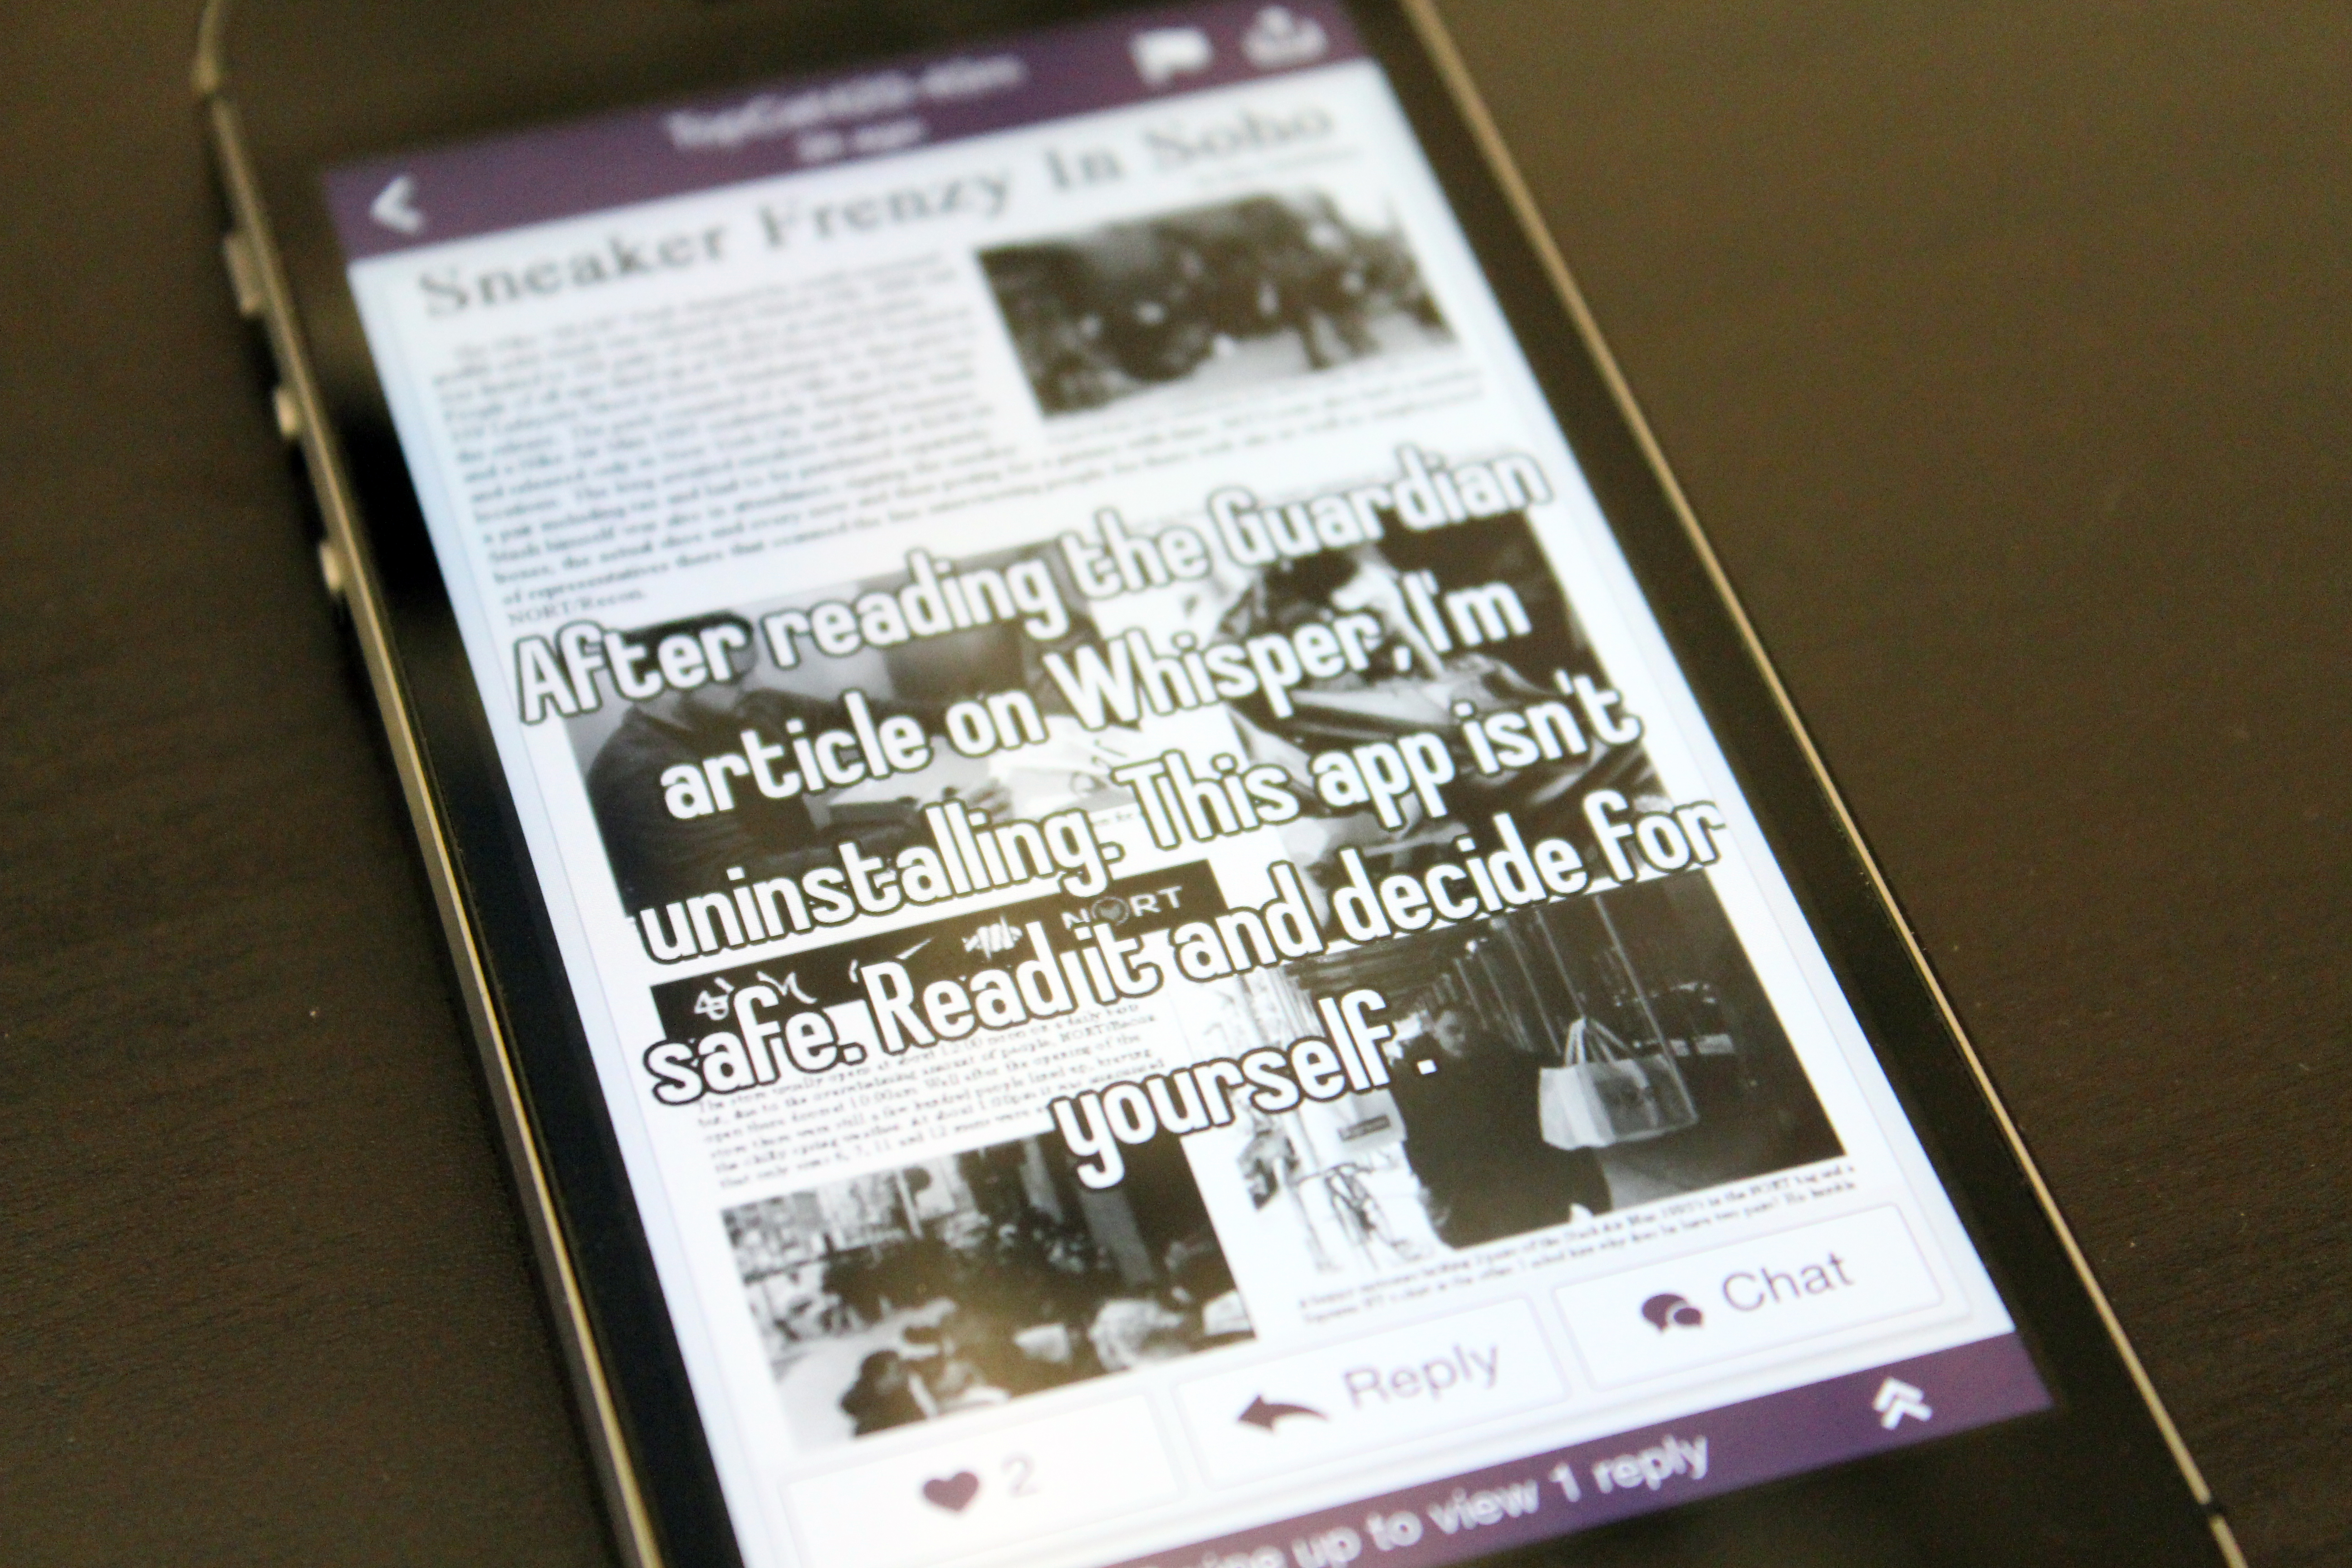 An anonymous secret on Whisper discusses the Guardian's article. Photo by Biz Carson/Gigaom